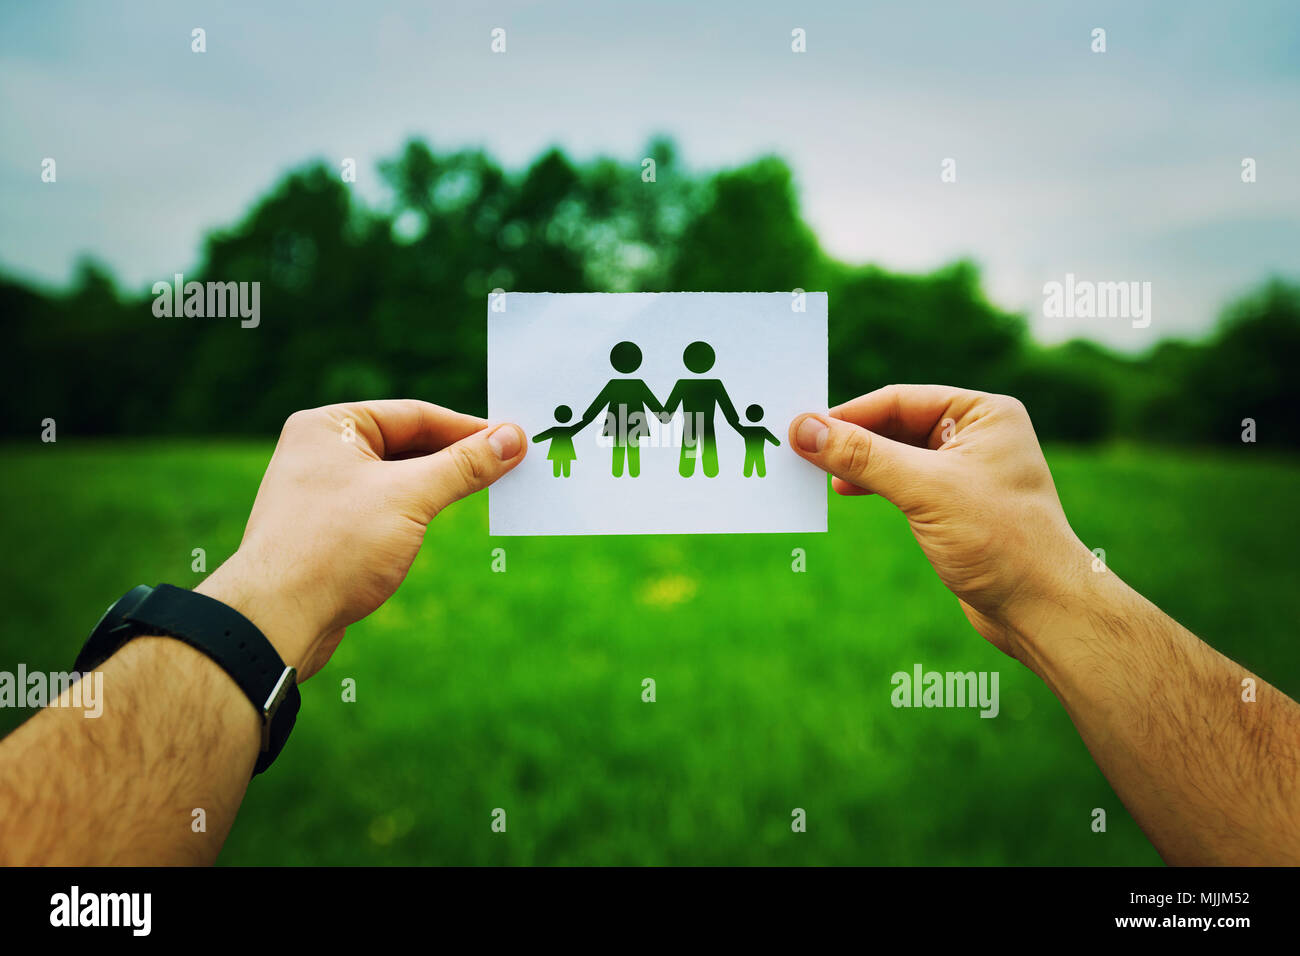 Man hands holding a white sheet with silhouette family symbol, including father, mother and two children. Family insurance concept isolated on a green - Stock Image